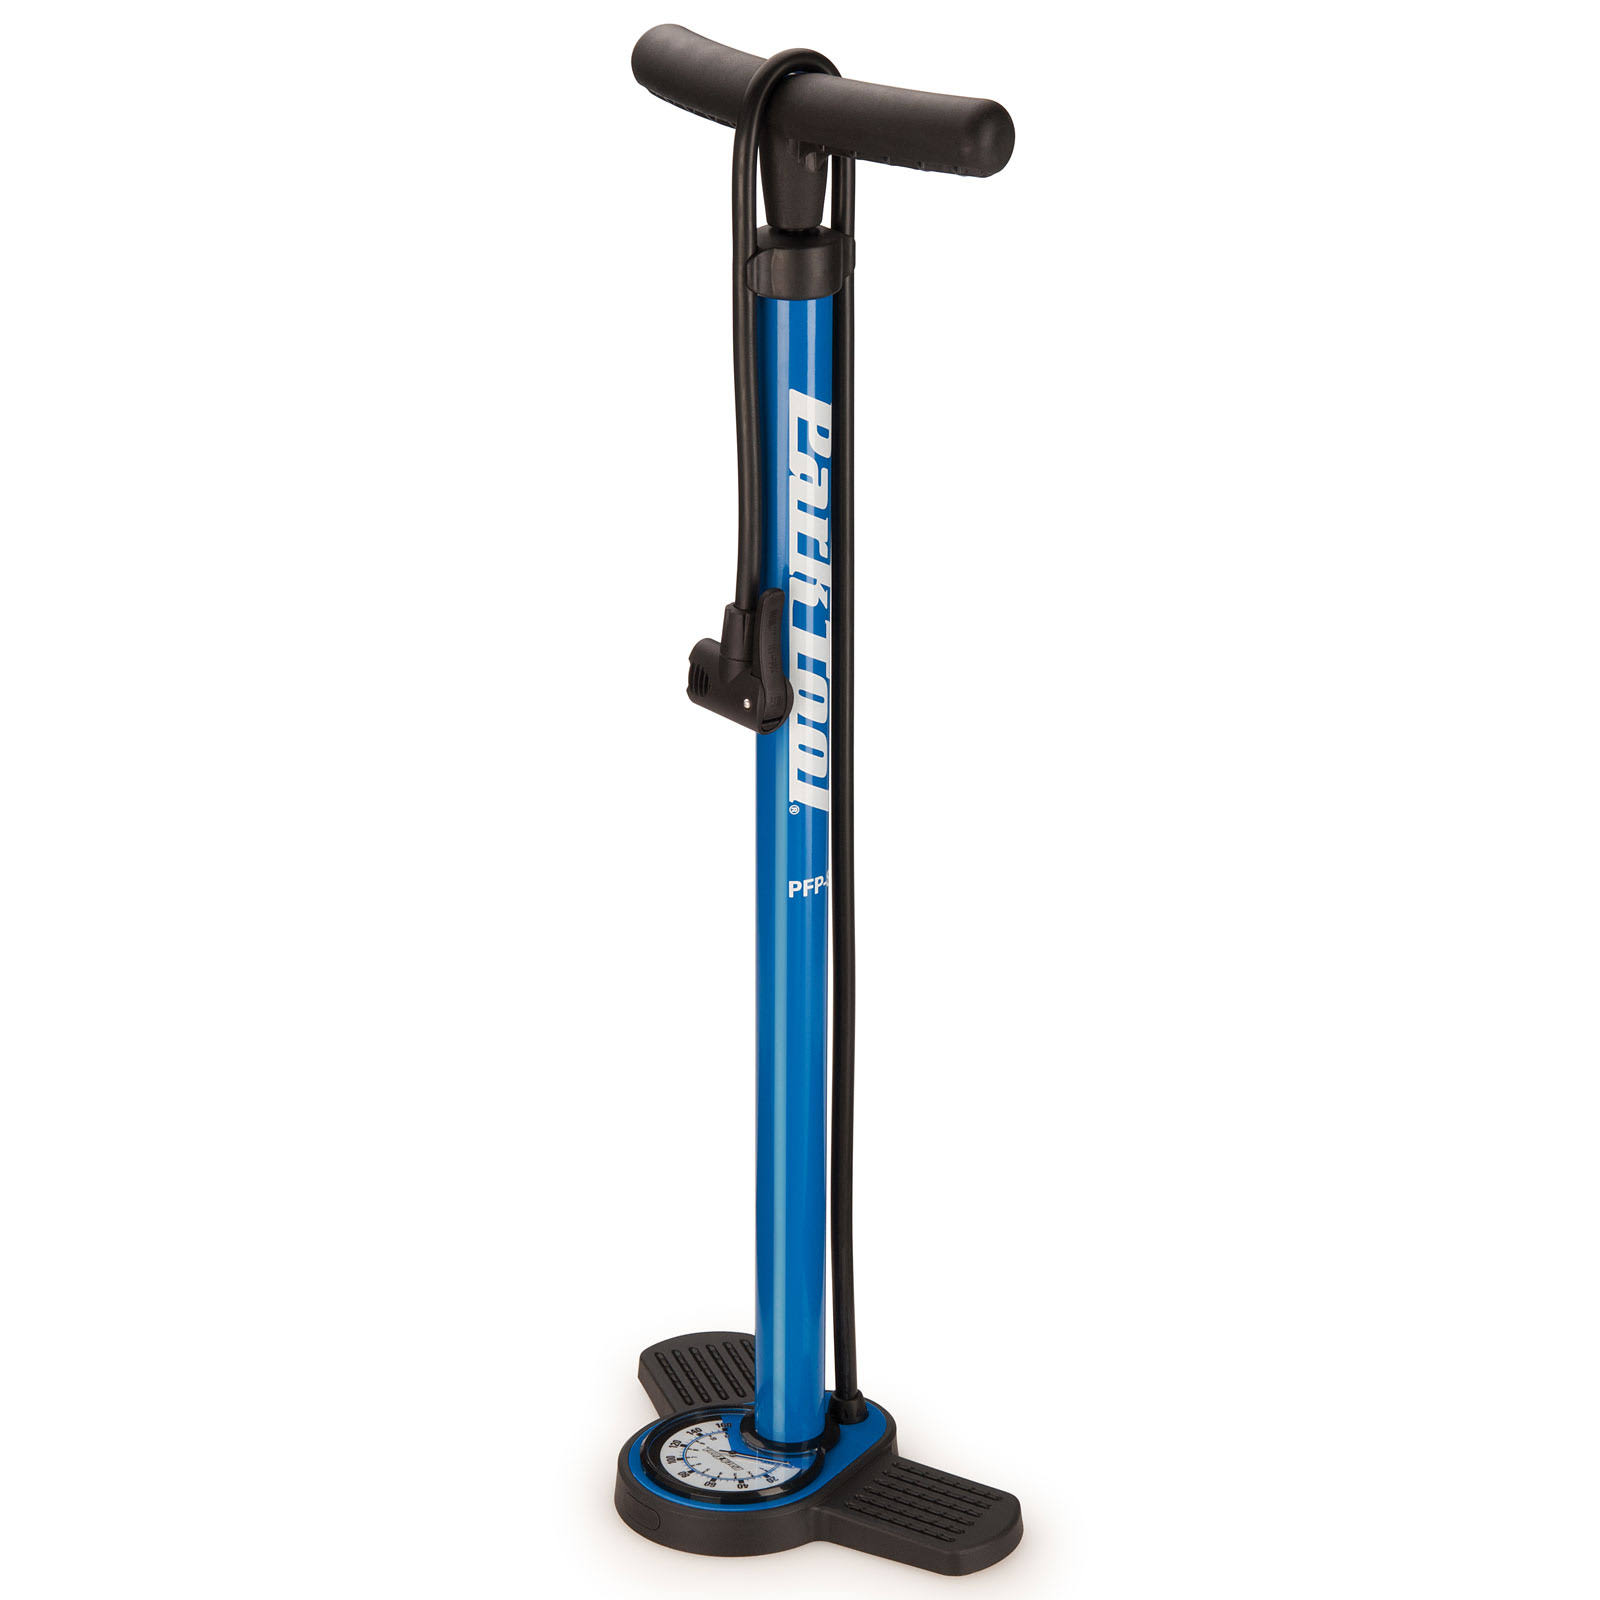 Park Tool Home Mechanic Floor Pump - Blue/Black